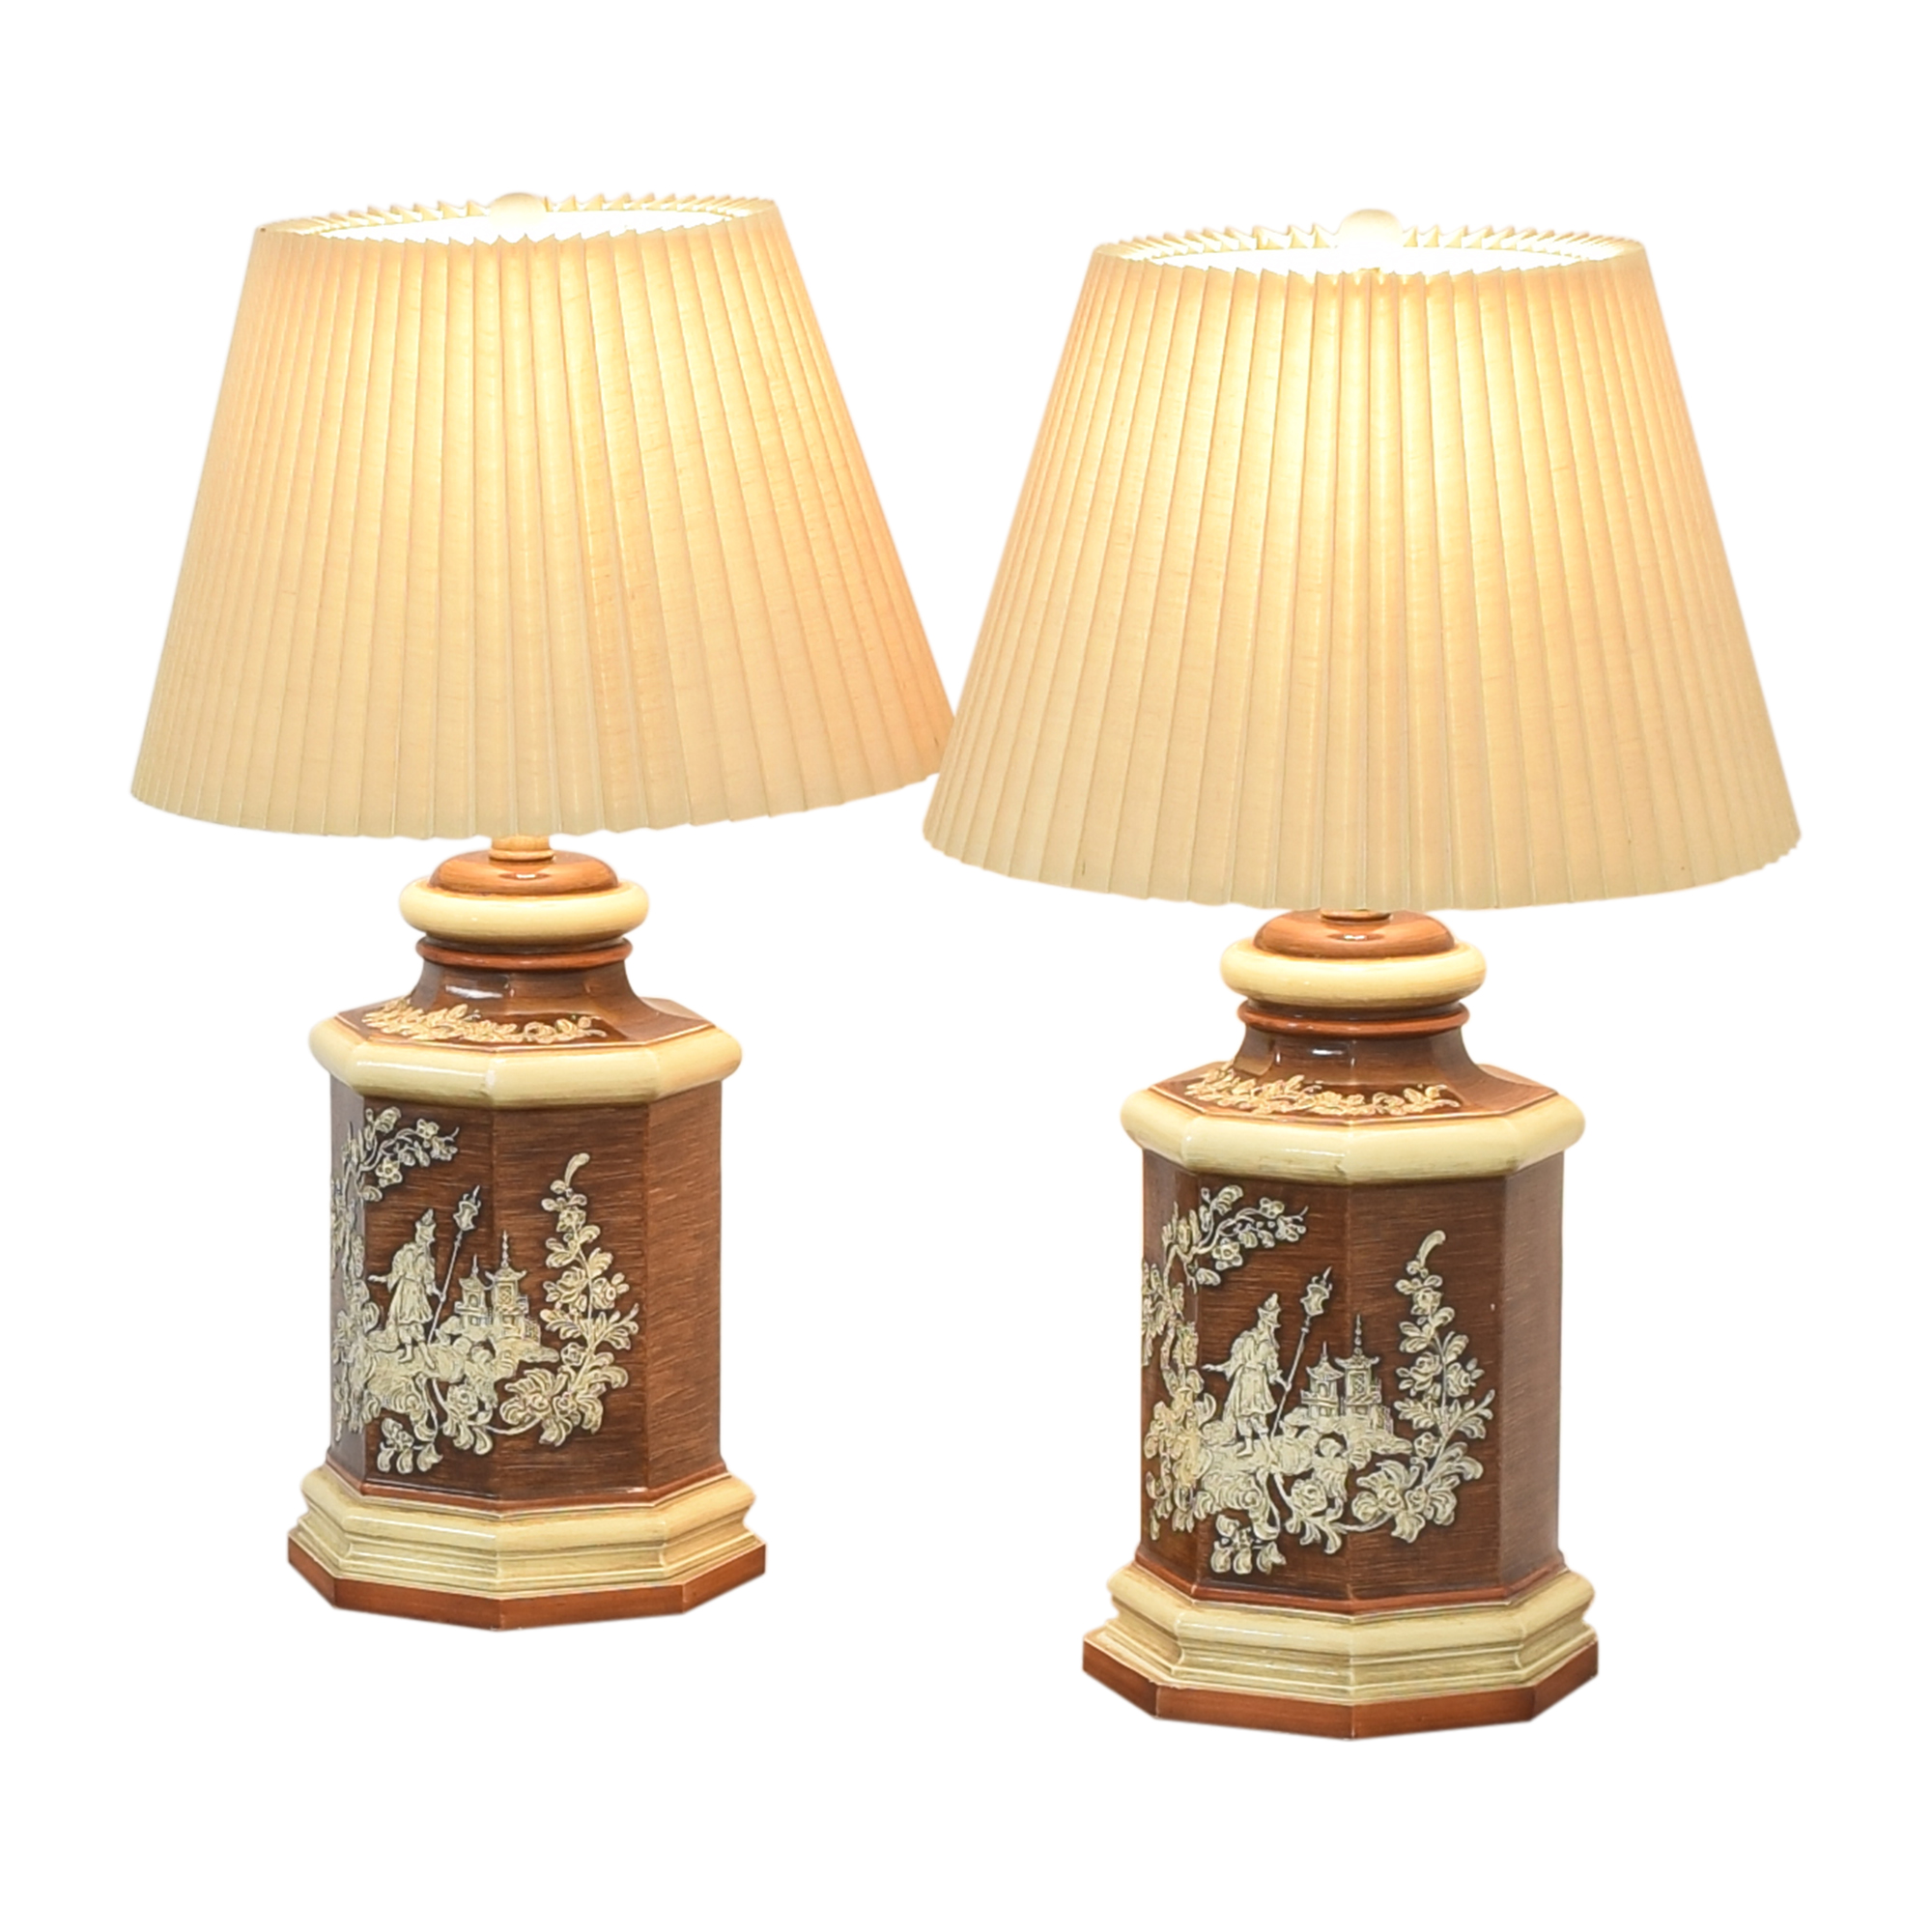 Heritage Heritage Decorative Table Lamps for sale